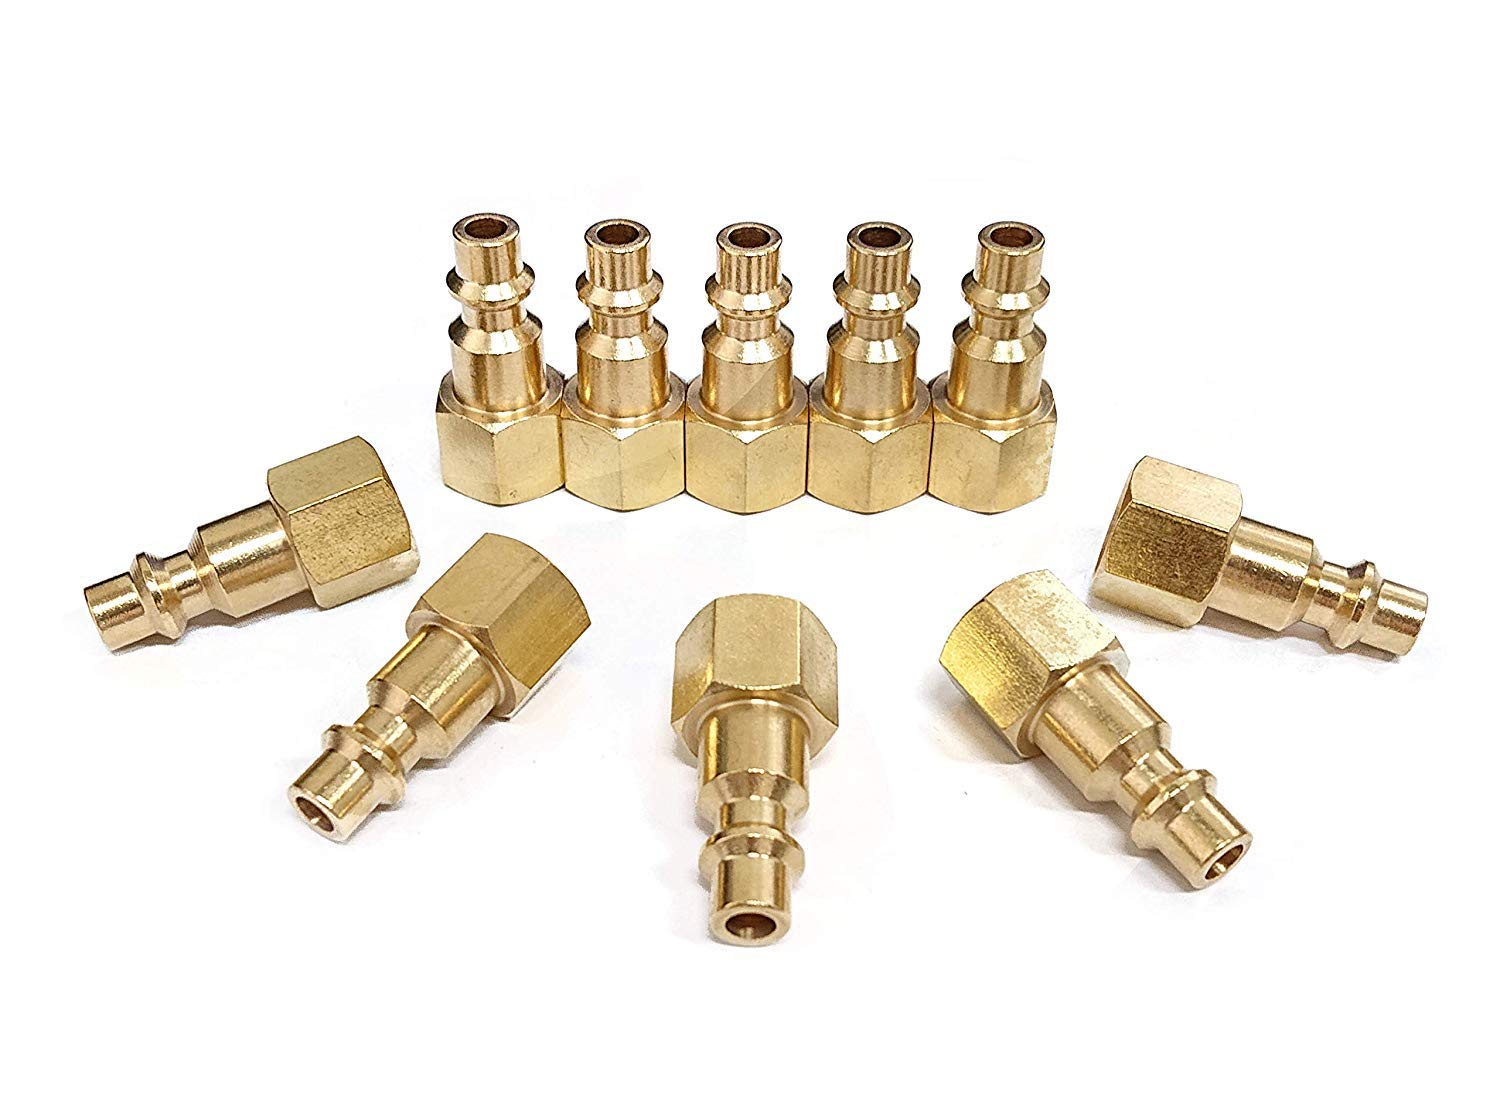 SUNGATOR 1//4-Inch Brass Female Industrial Coupler 10-Pack NPT Female Quick Conne